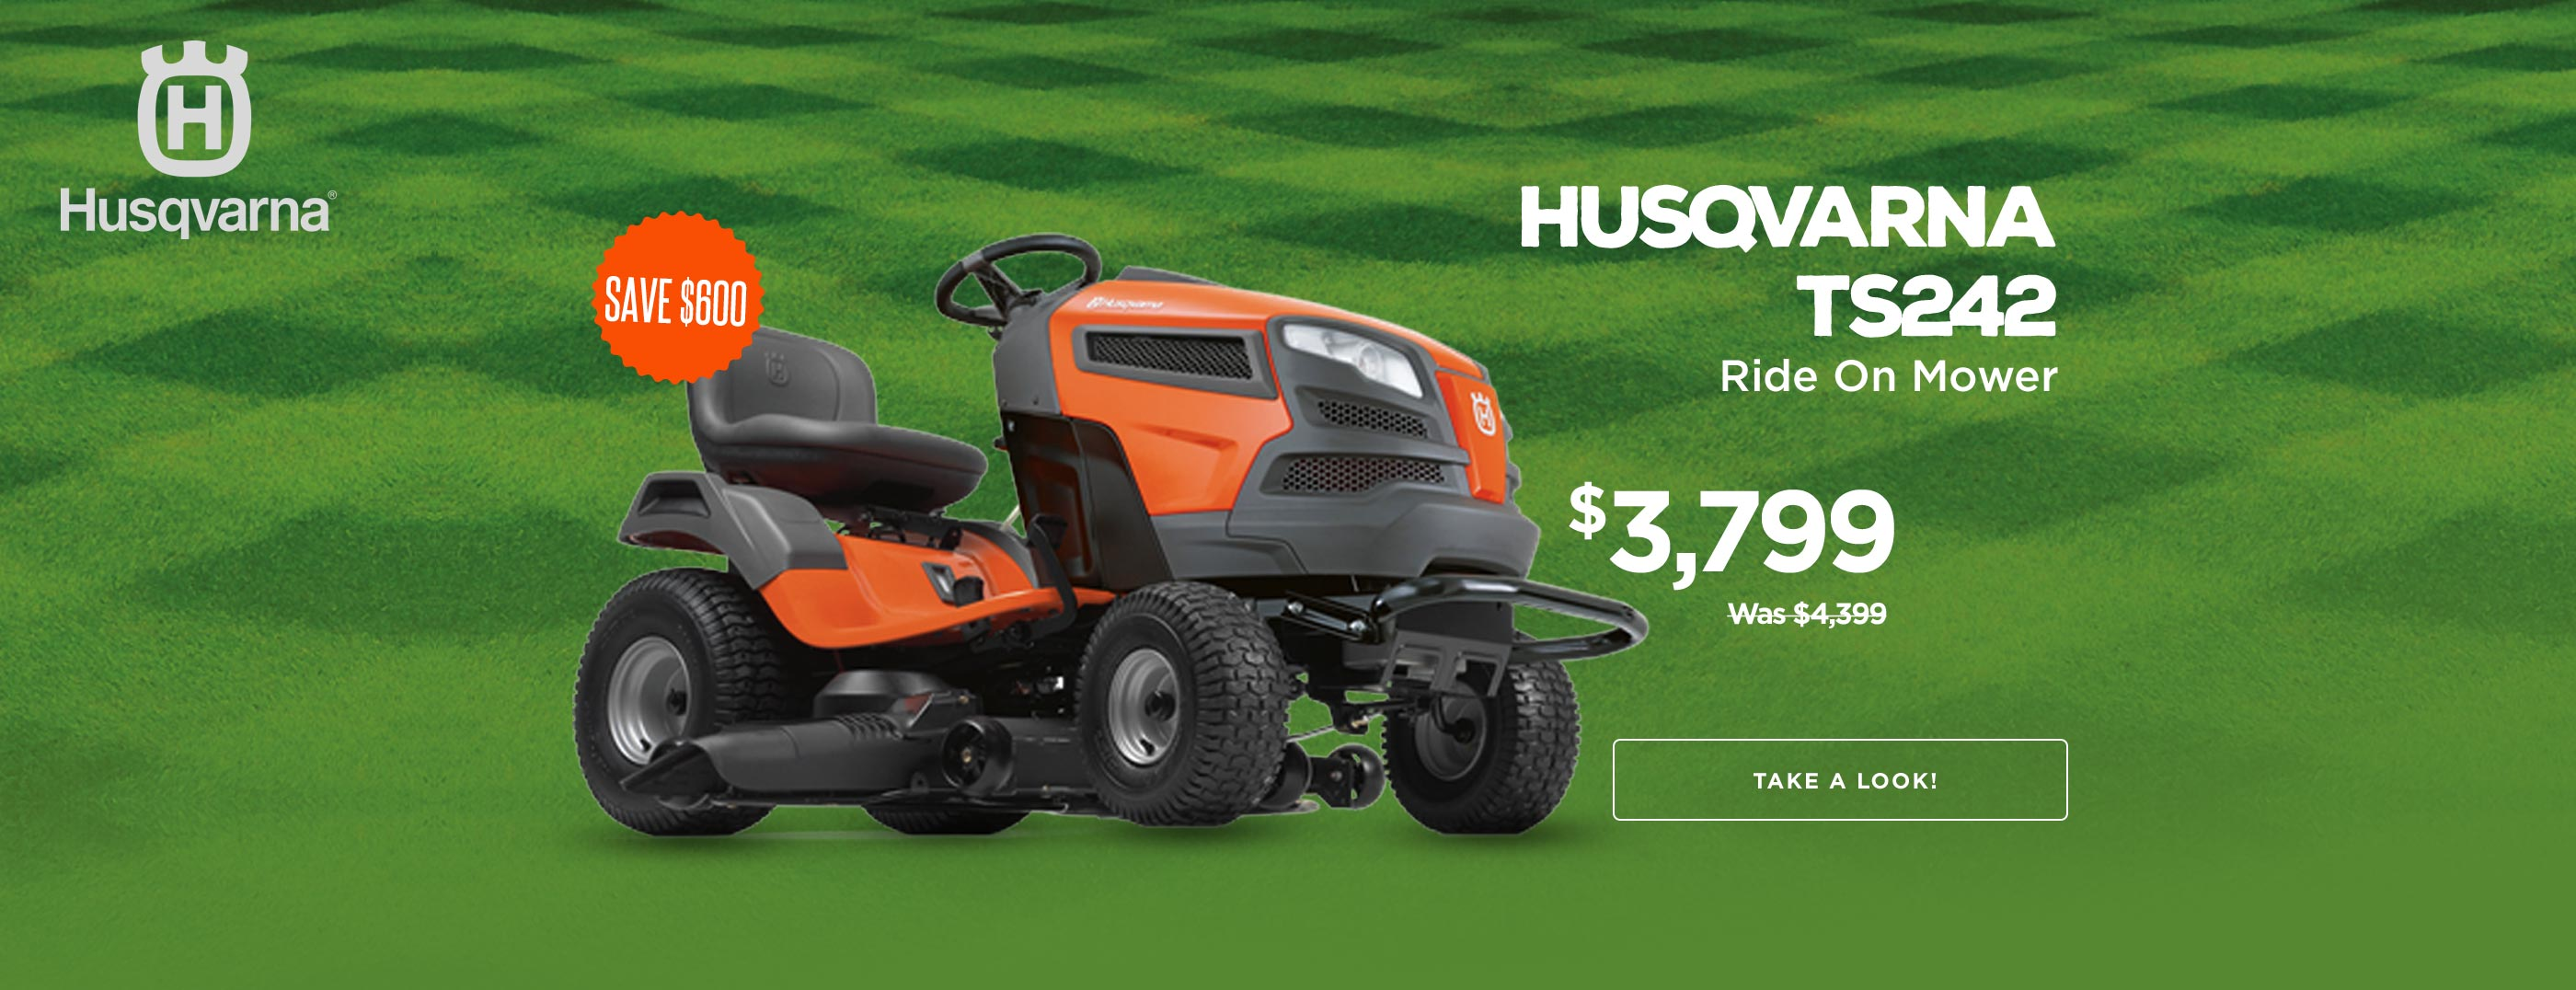 Husqvarna TS242 Huge $400 in Savings!